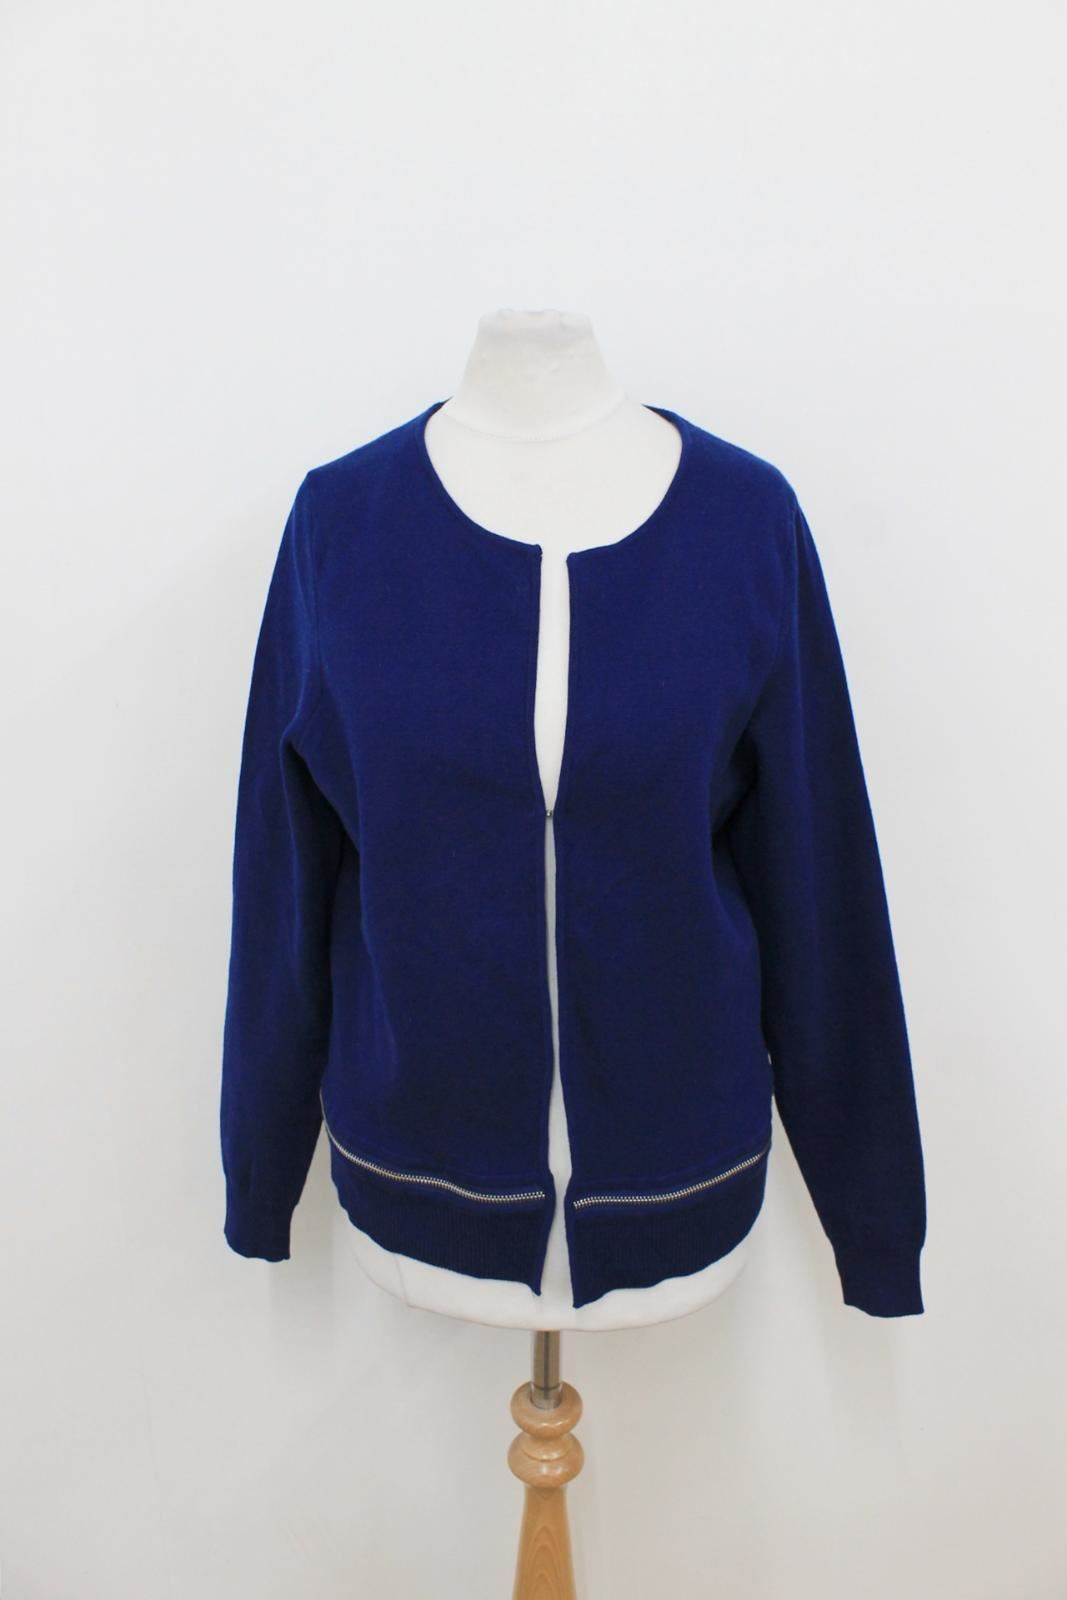 SANDRO PARIS Ladies Navy bluee Long Sleeved Knitted Fine Cardigan Size 1 S